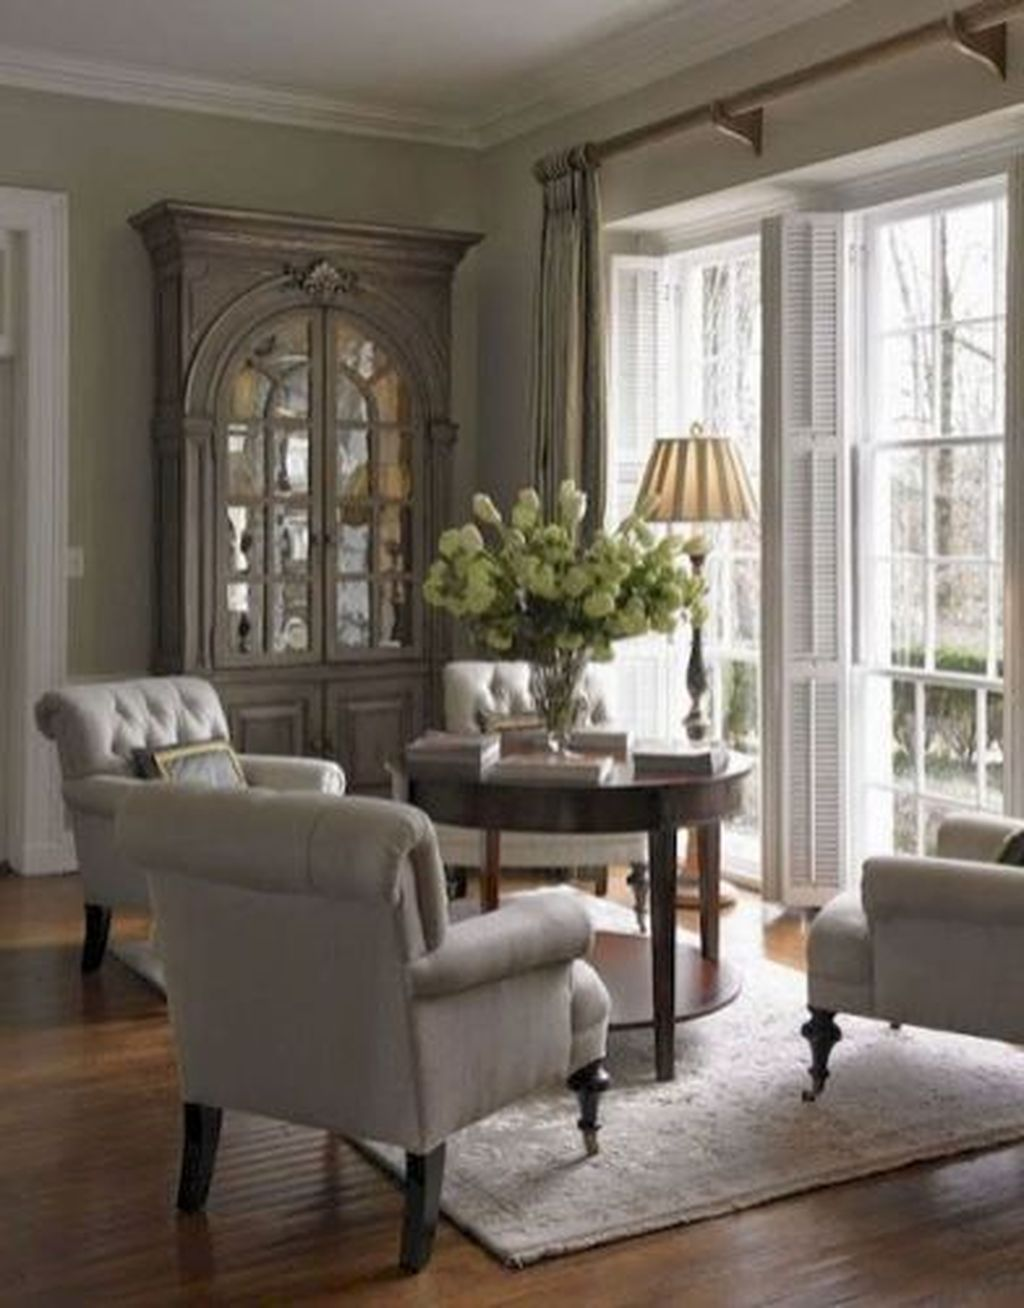 The Best Country Style Interior Design Ideas 15